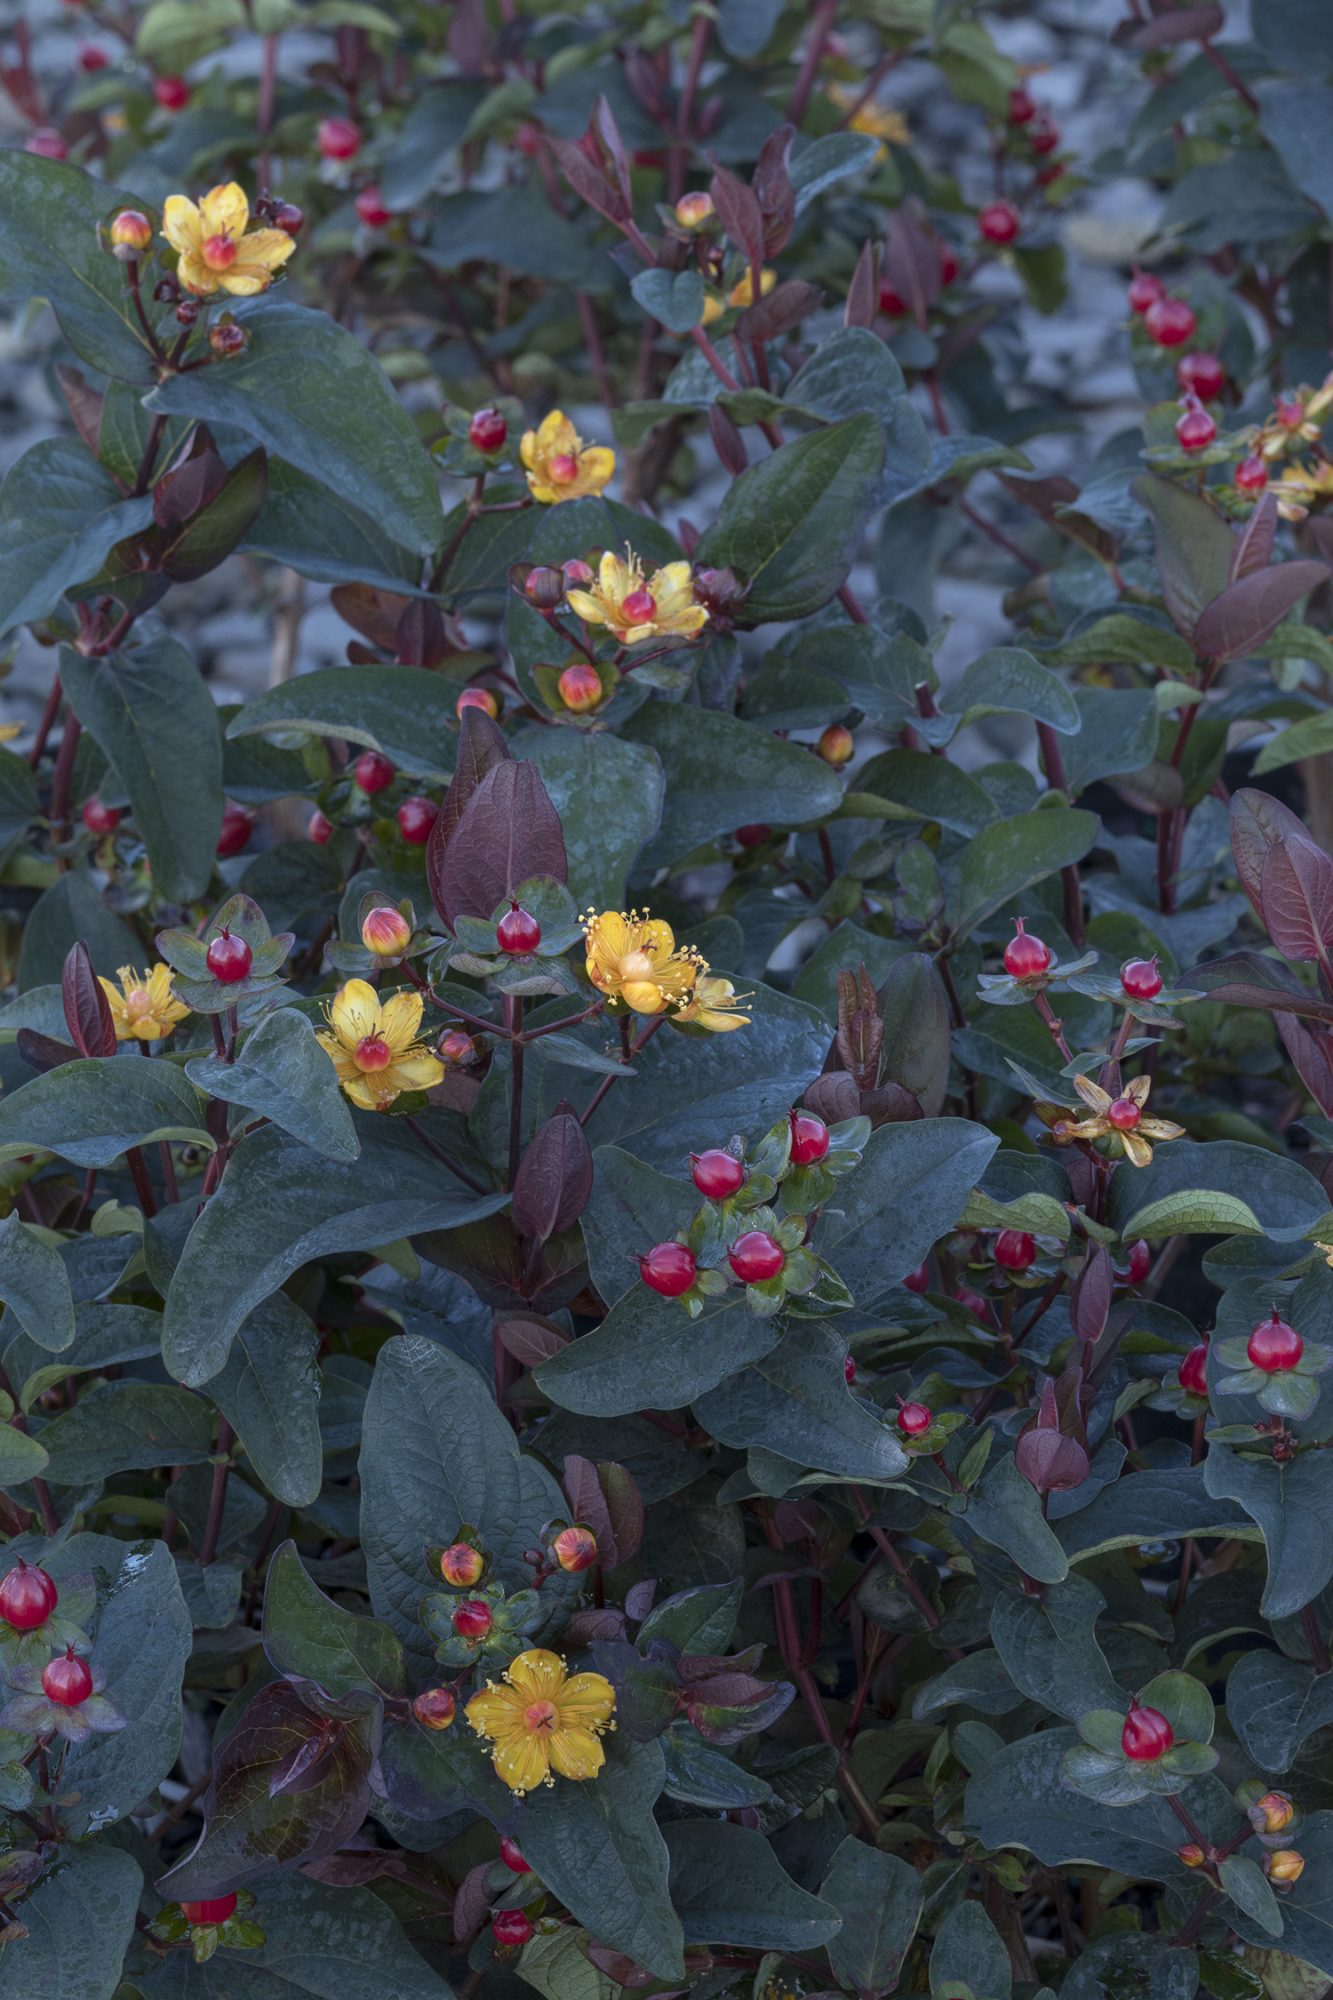 Fall Plants, FloralBerry Sangria Hypericum with tiny blooms